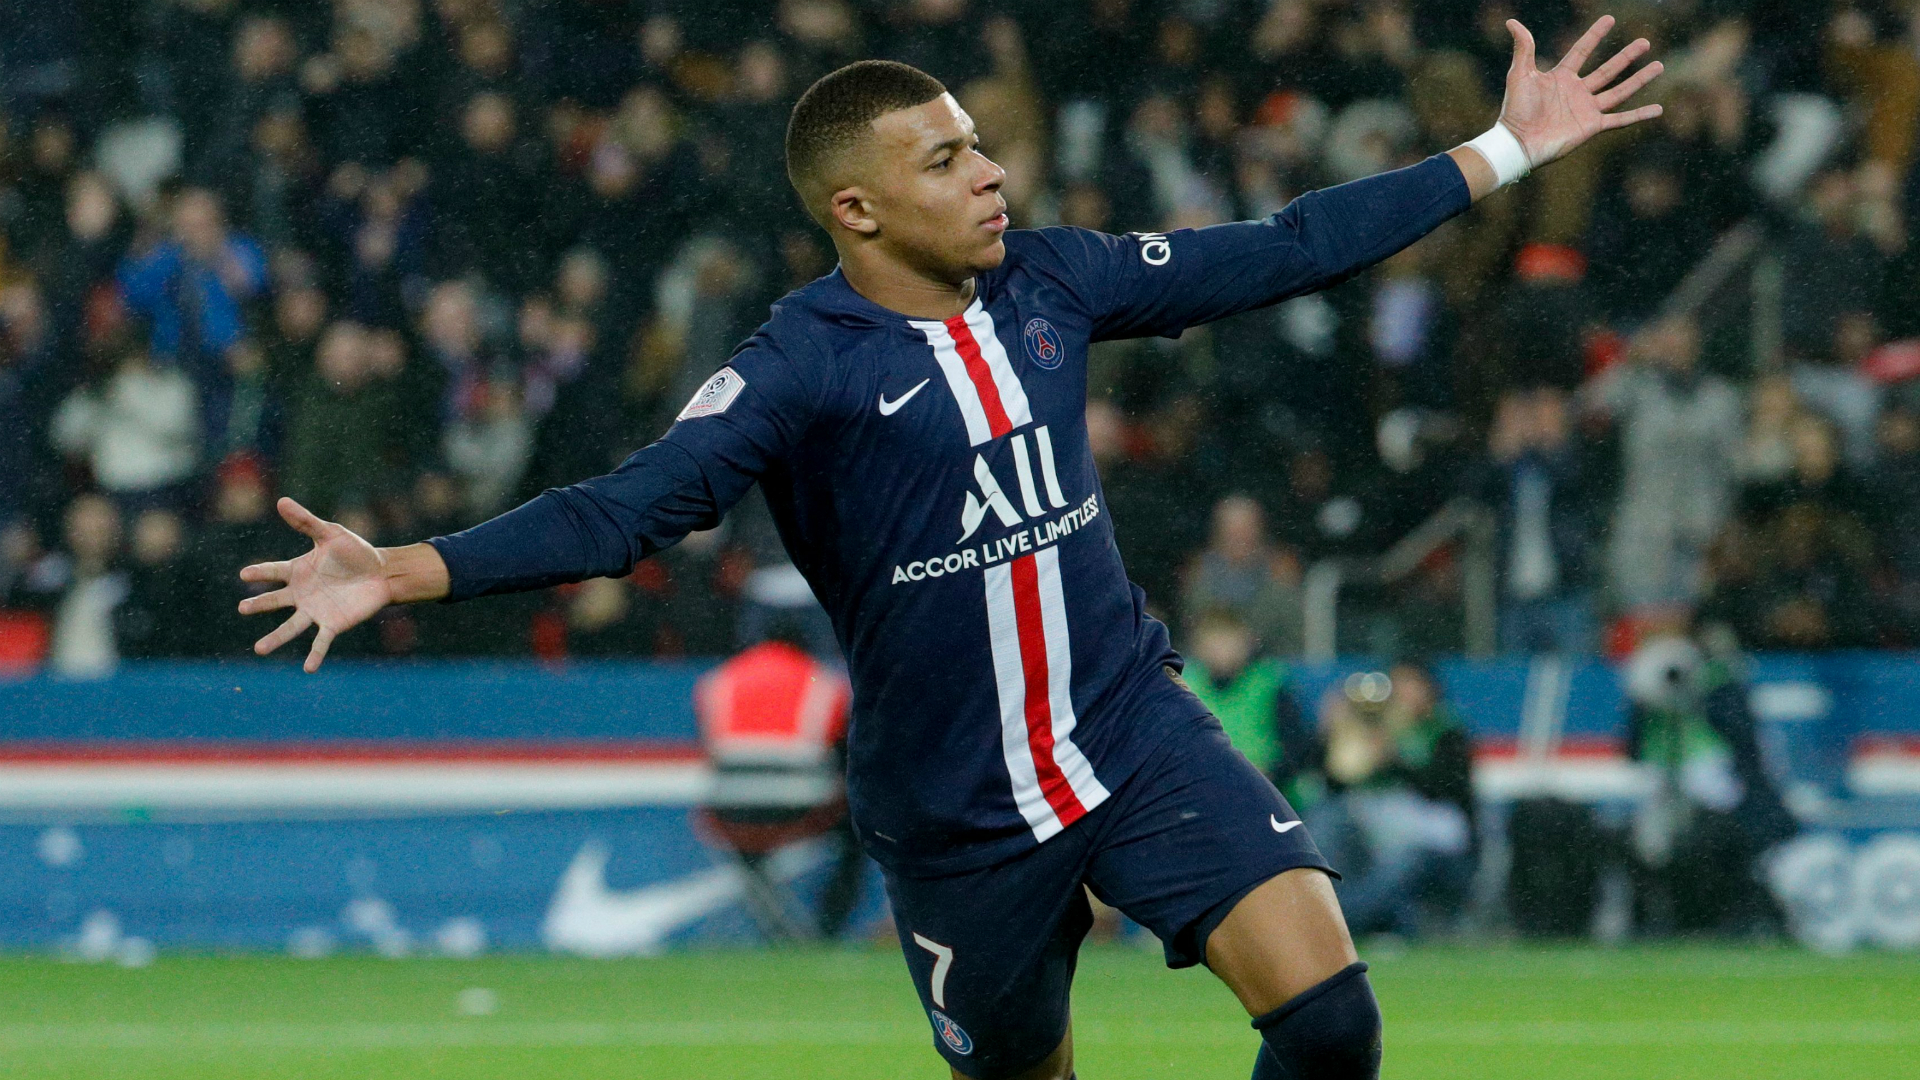 Rumour Has It: Mbappe wants Real Madrid clause in new PSG deal